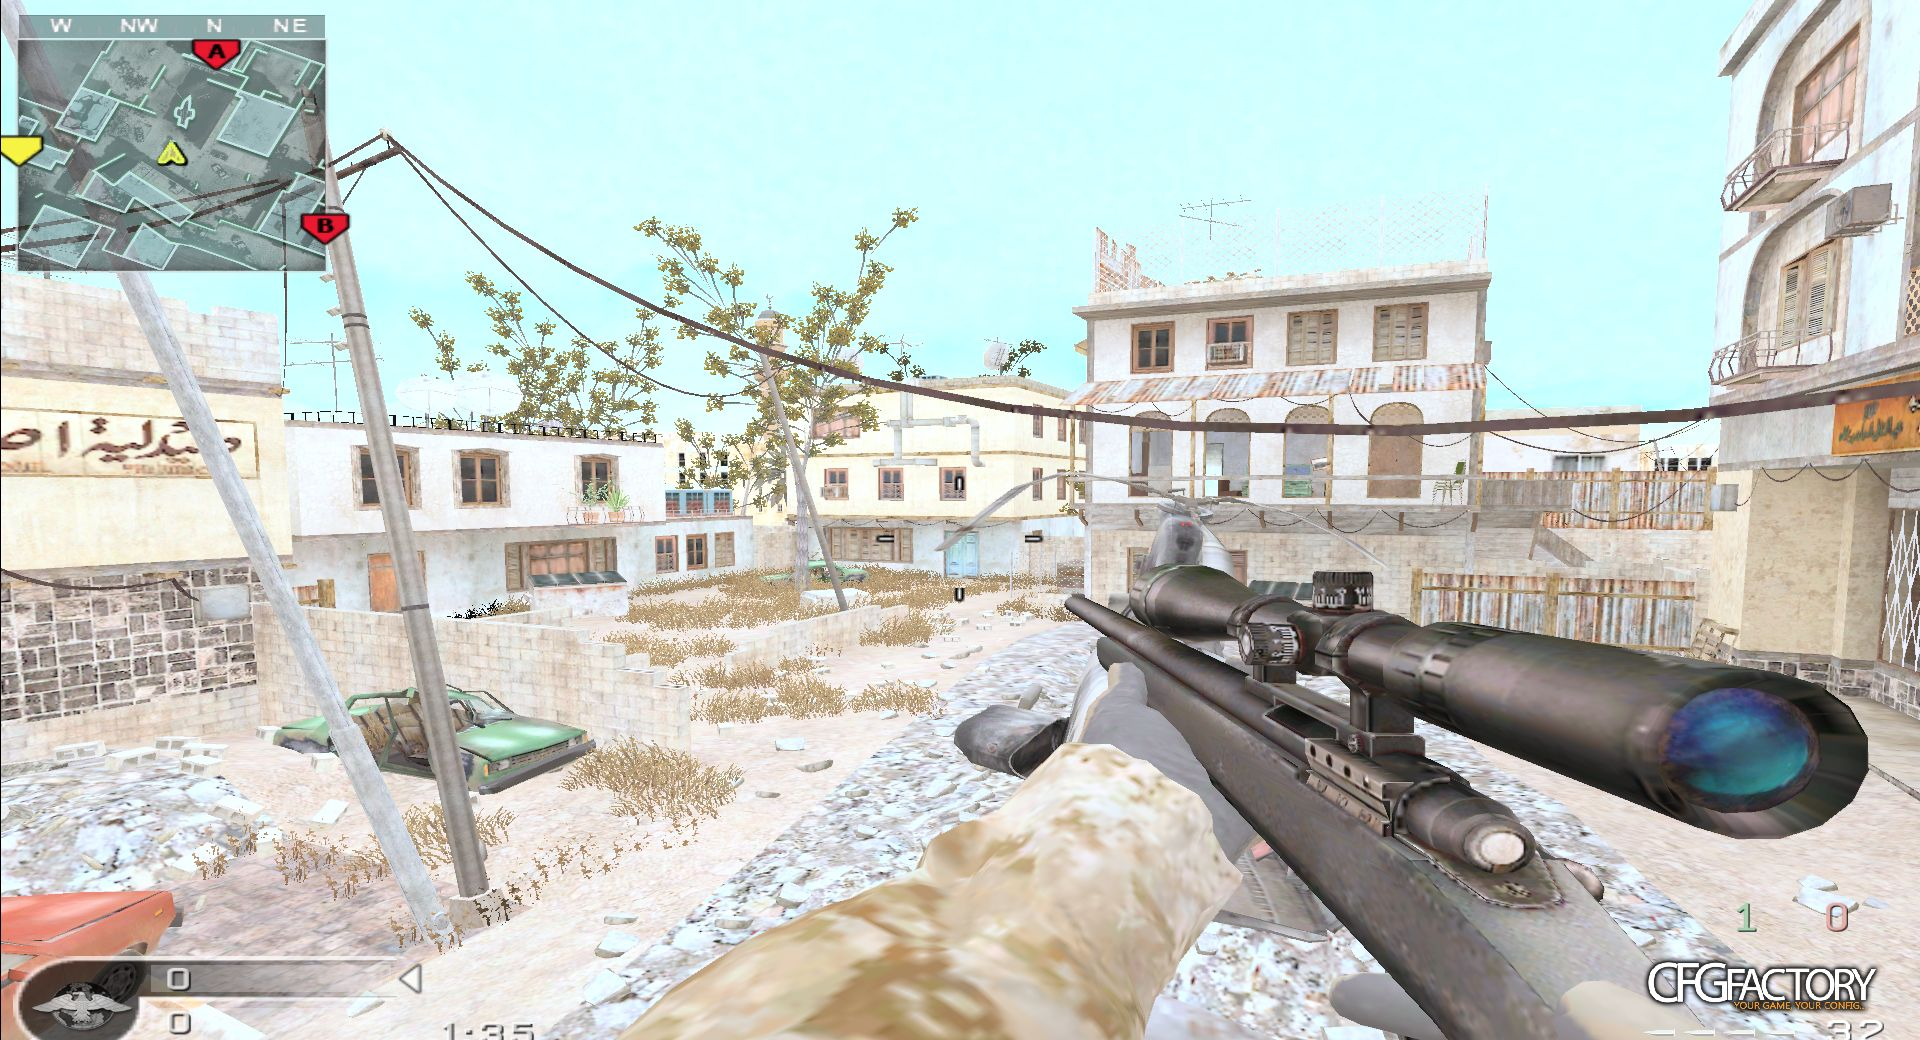 cod4, configs, tenic scope filmtweaks, ten<3